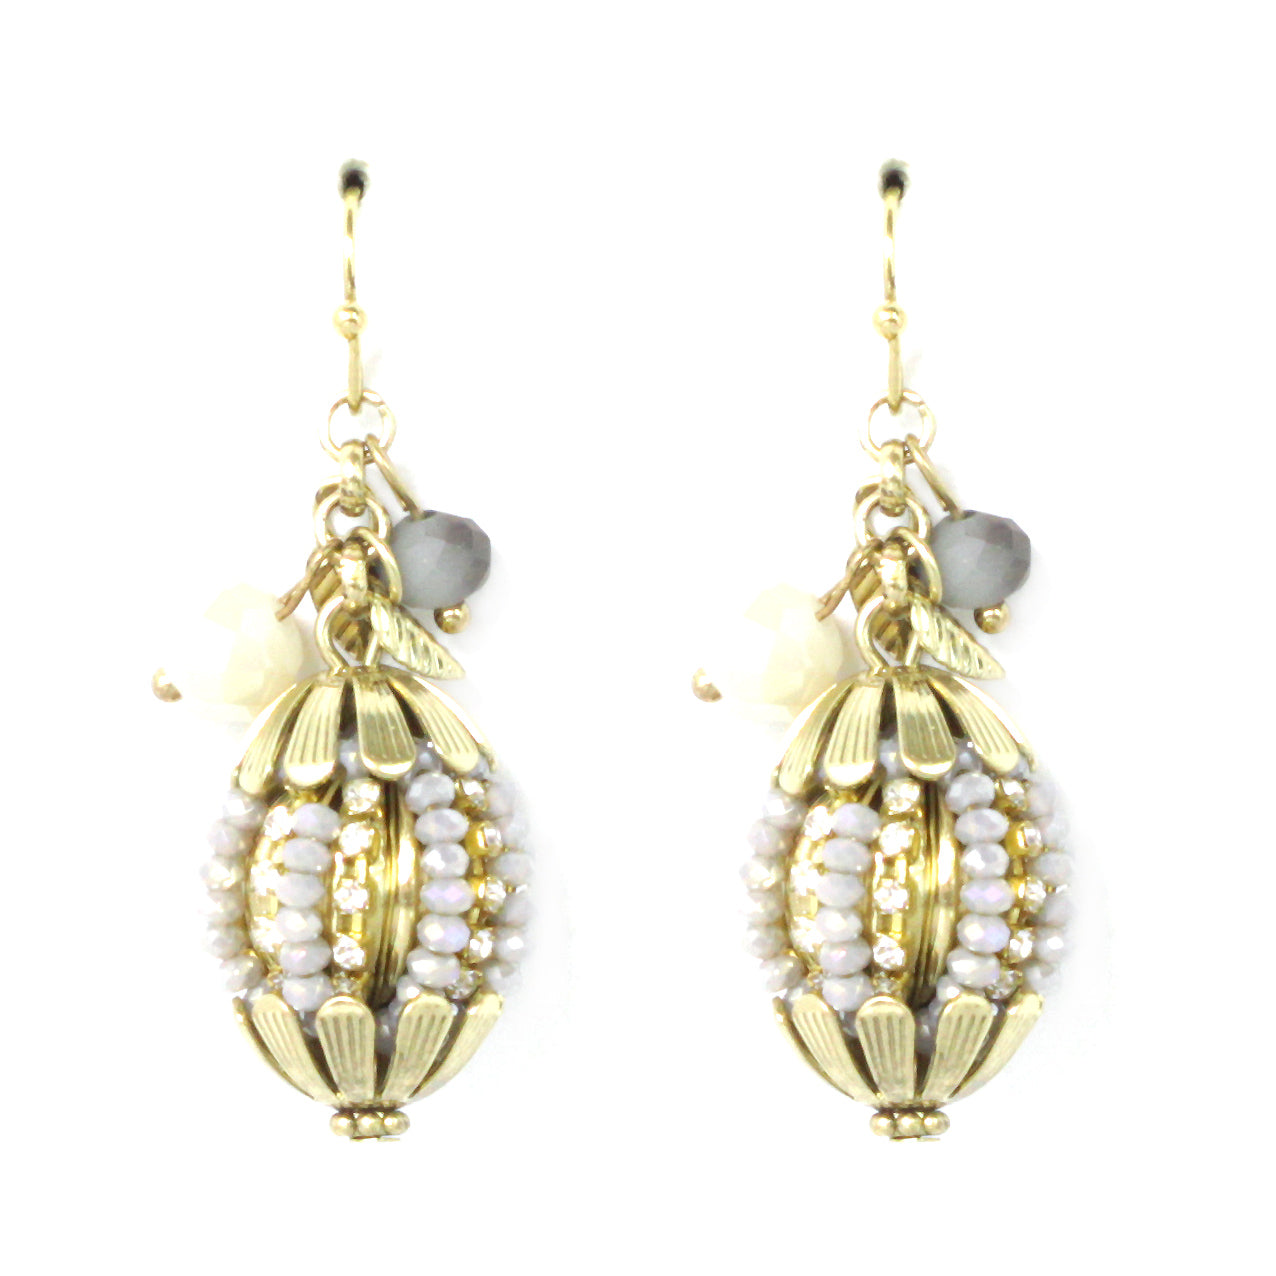 Crystal Beaded Ball Fish Hook Earrings